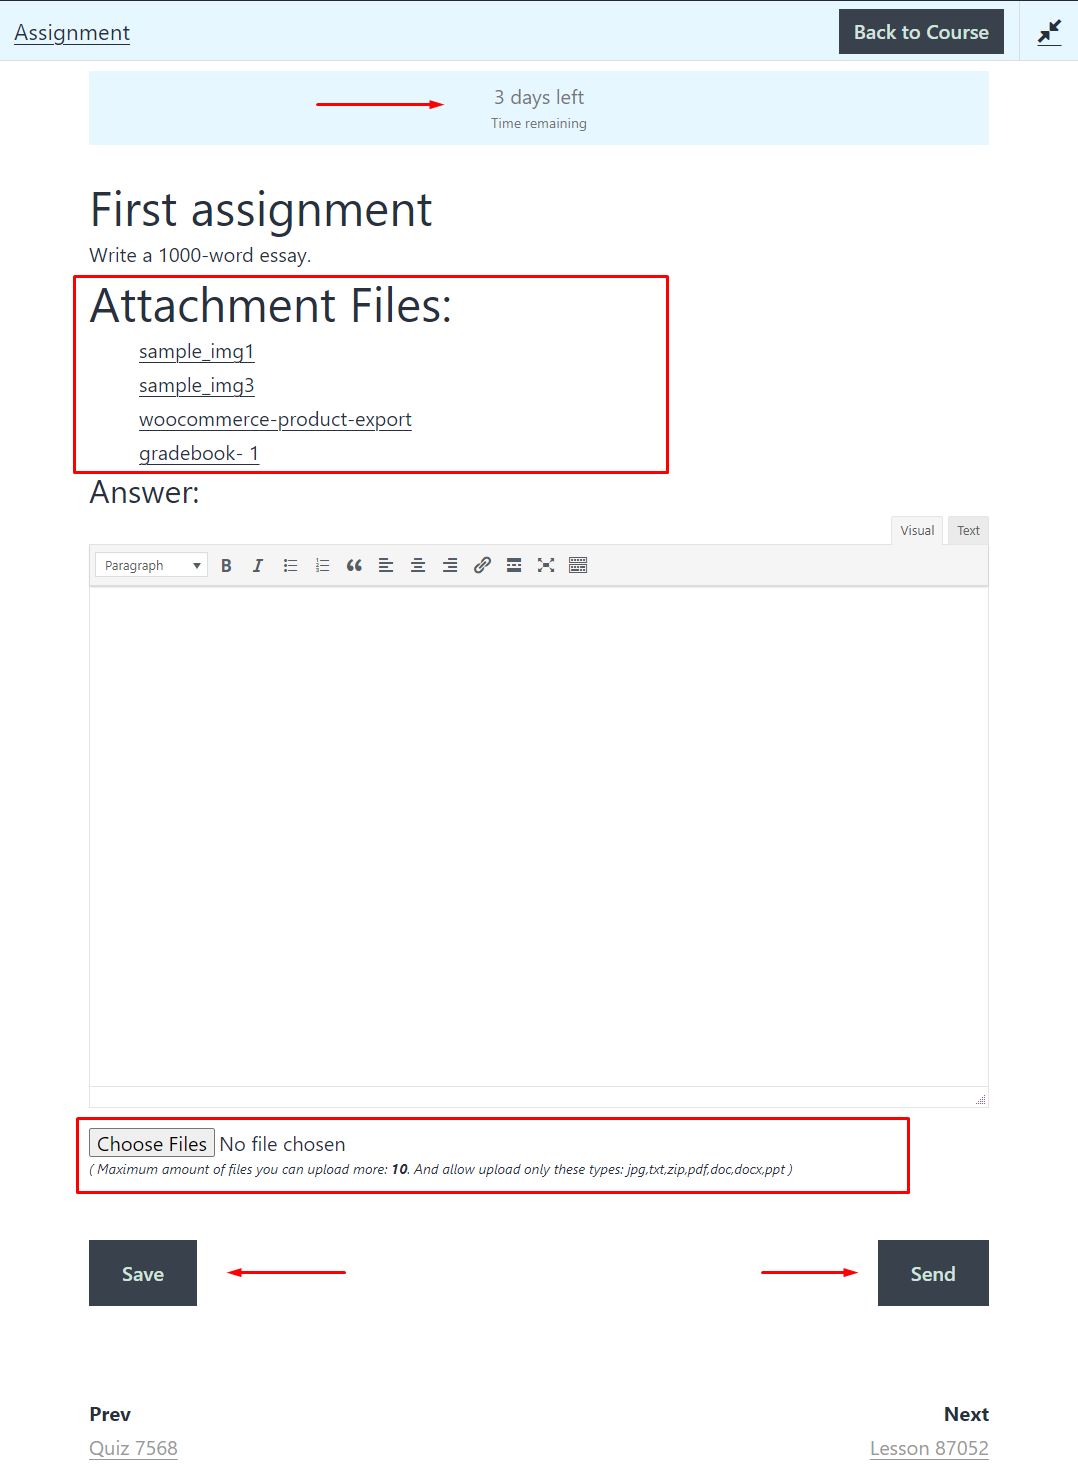 assignment-frontend